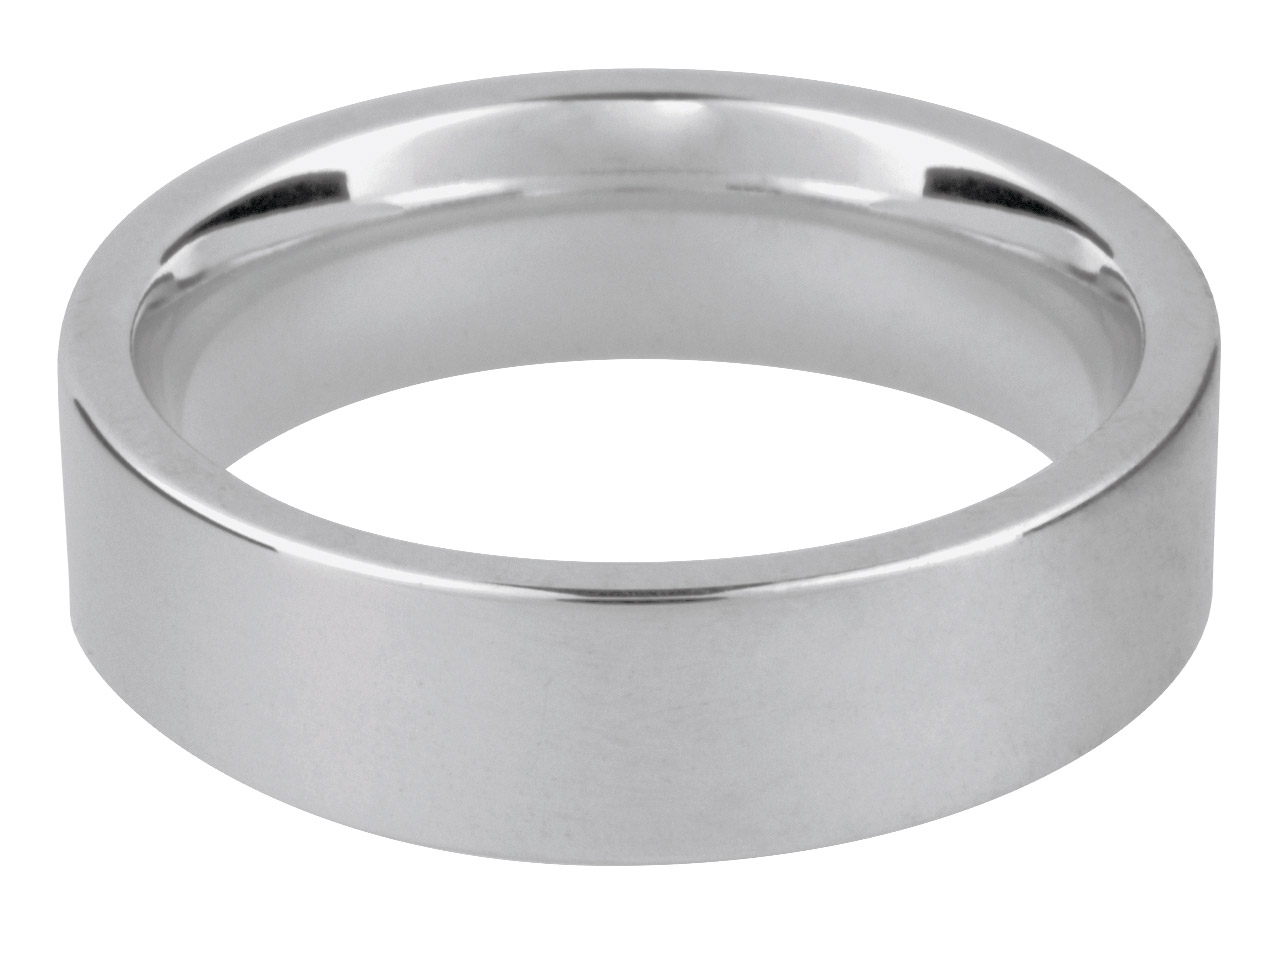 Platinum Easy Fit Wedding Ring     4.0mm R 10.2gms Medium Weight      Hallmarked Wall Thickness 1.96mm